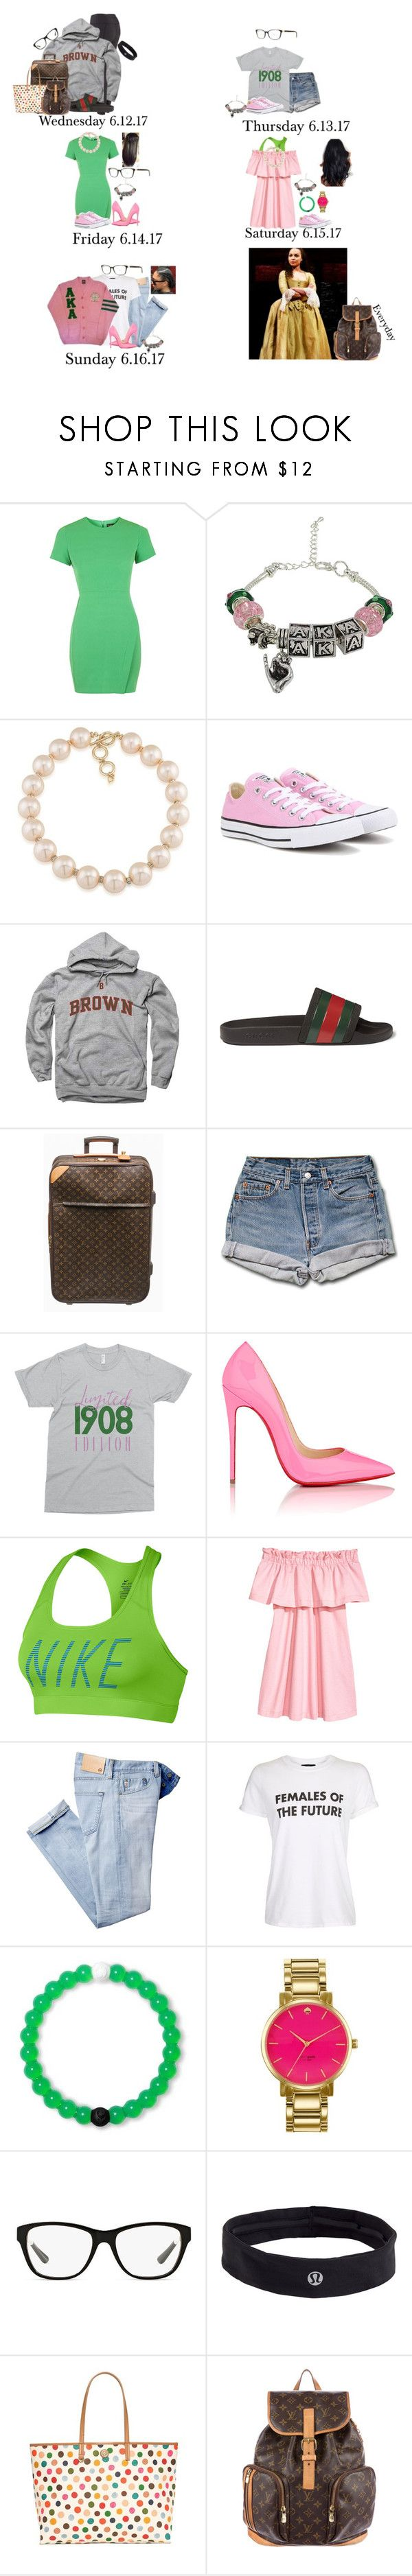 """""""Wednesday-Sunday// Alpha kappa Alpha international conference and leadership seminar"""" by those-families ❤ liked on Polyvore featuring Topshop, Carolee, Converse, Gucci, Louis Vuitton, Christian Louboutin, NIKE, Lokai, Kate Spade and Ralph Lauren"""